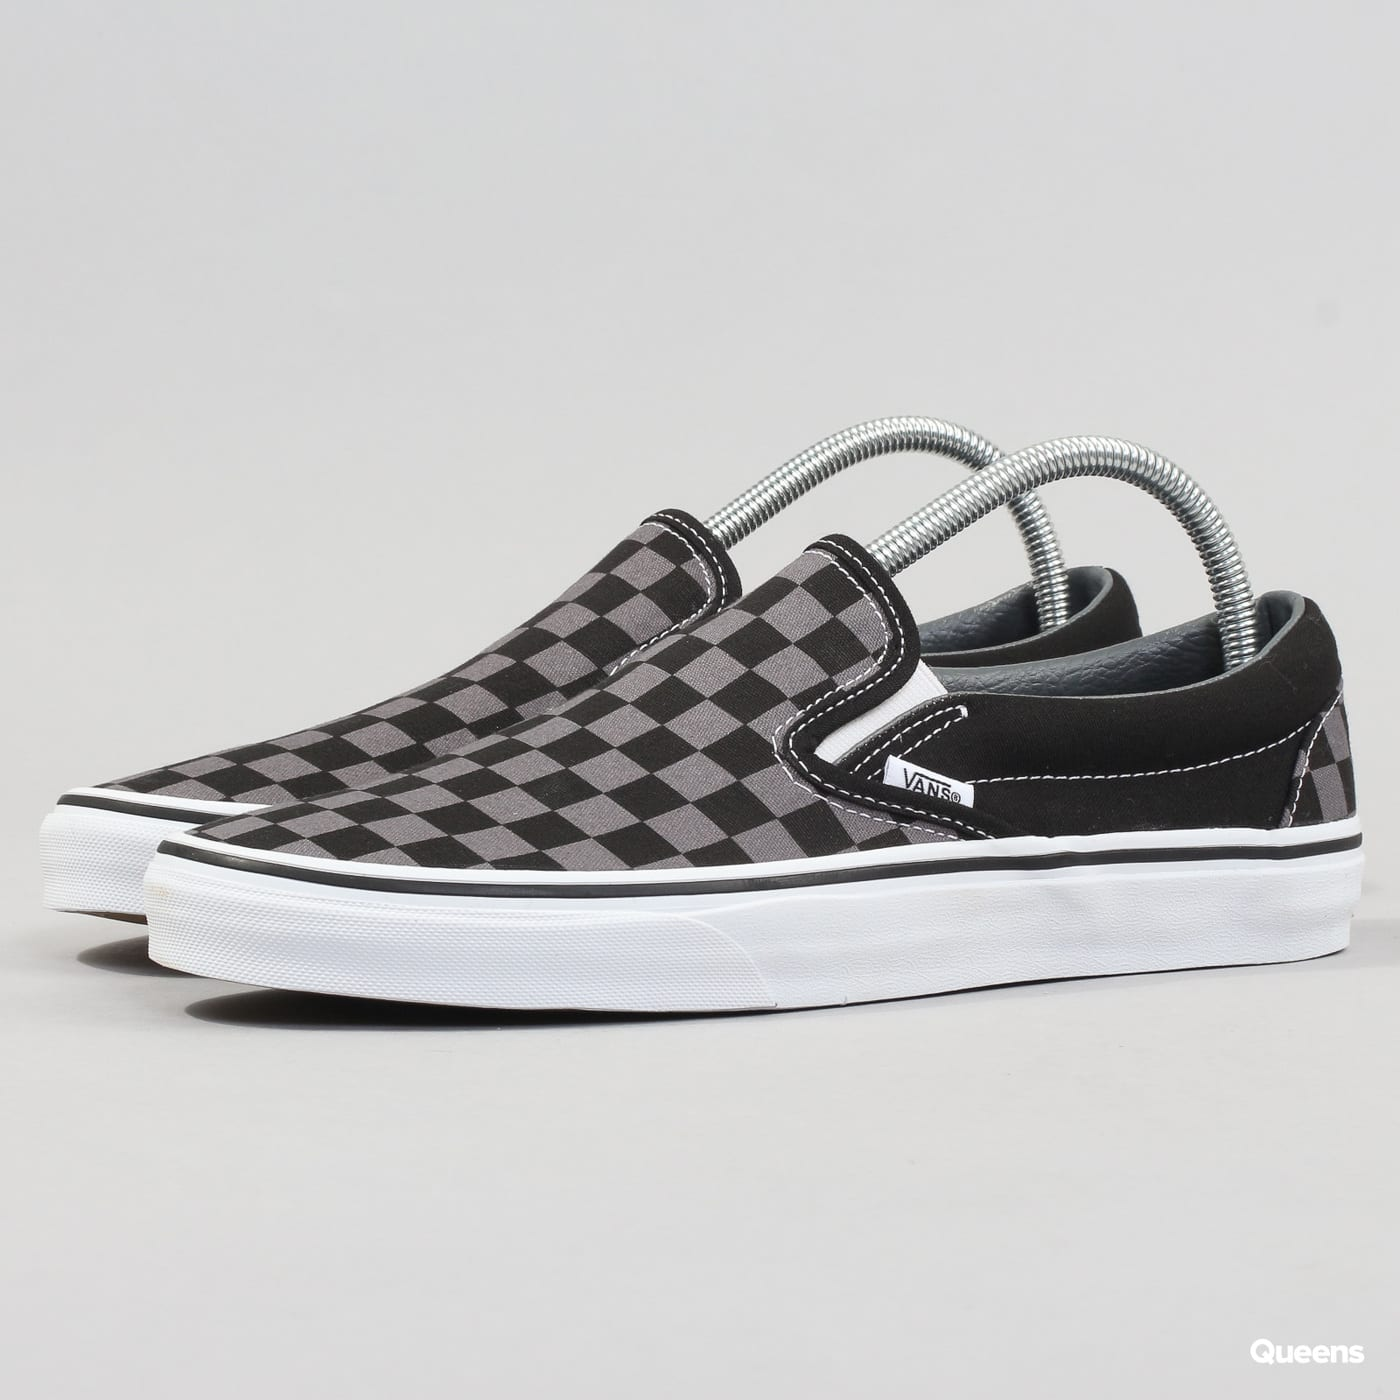 Vans Classic Slip - On black / pewter checkerboard